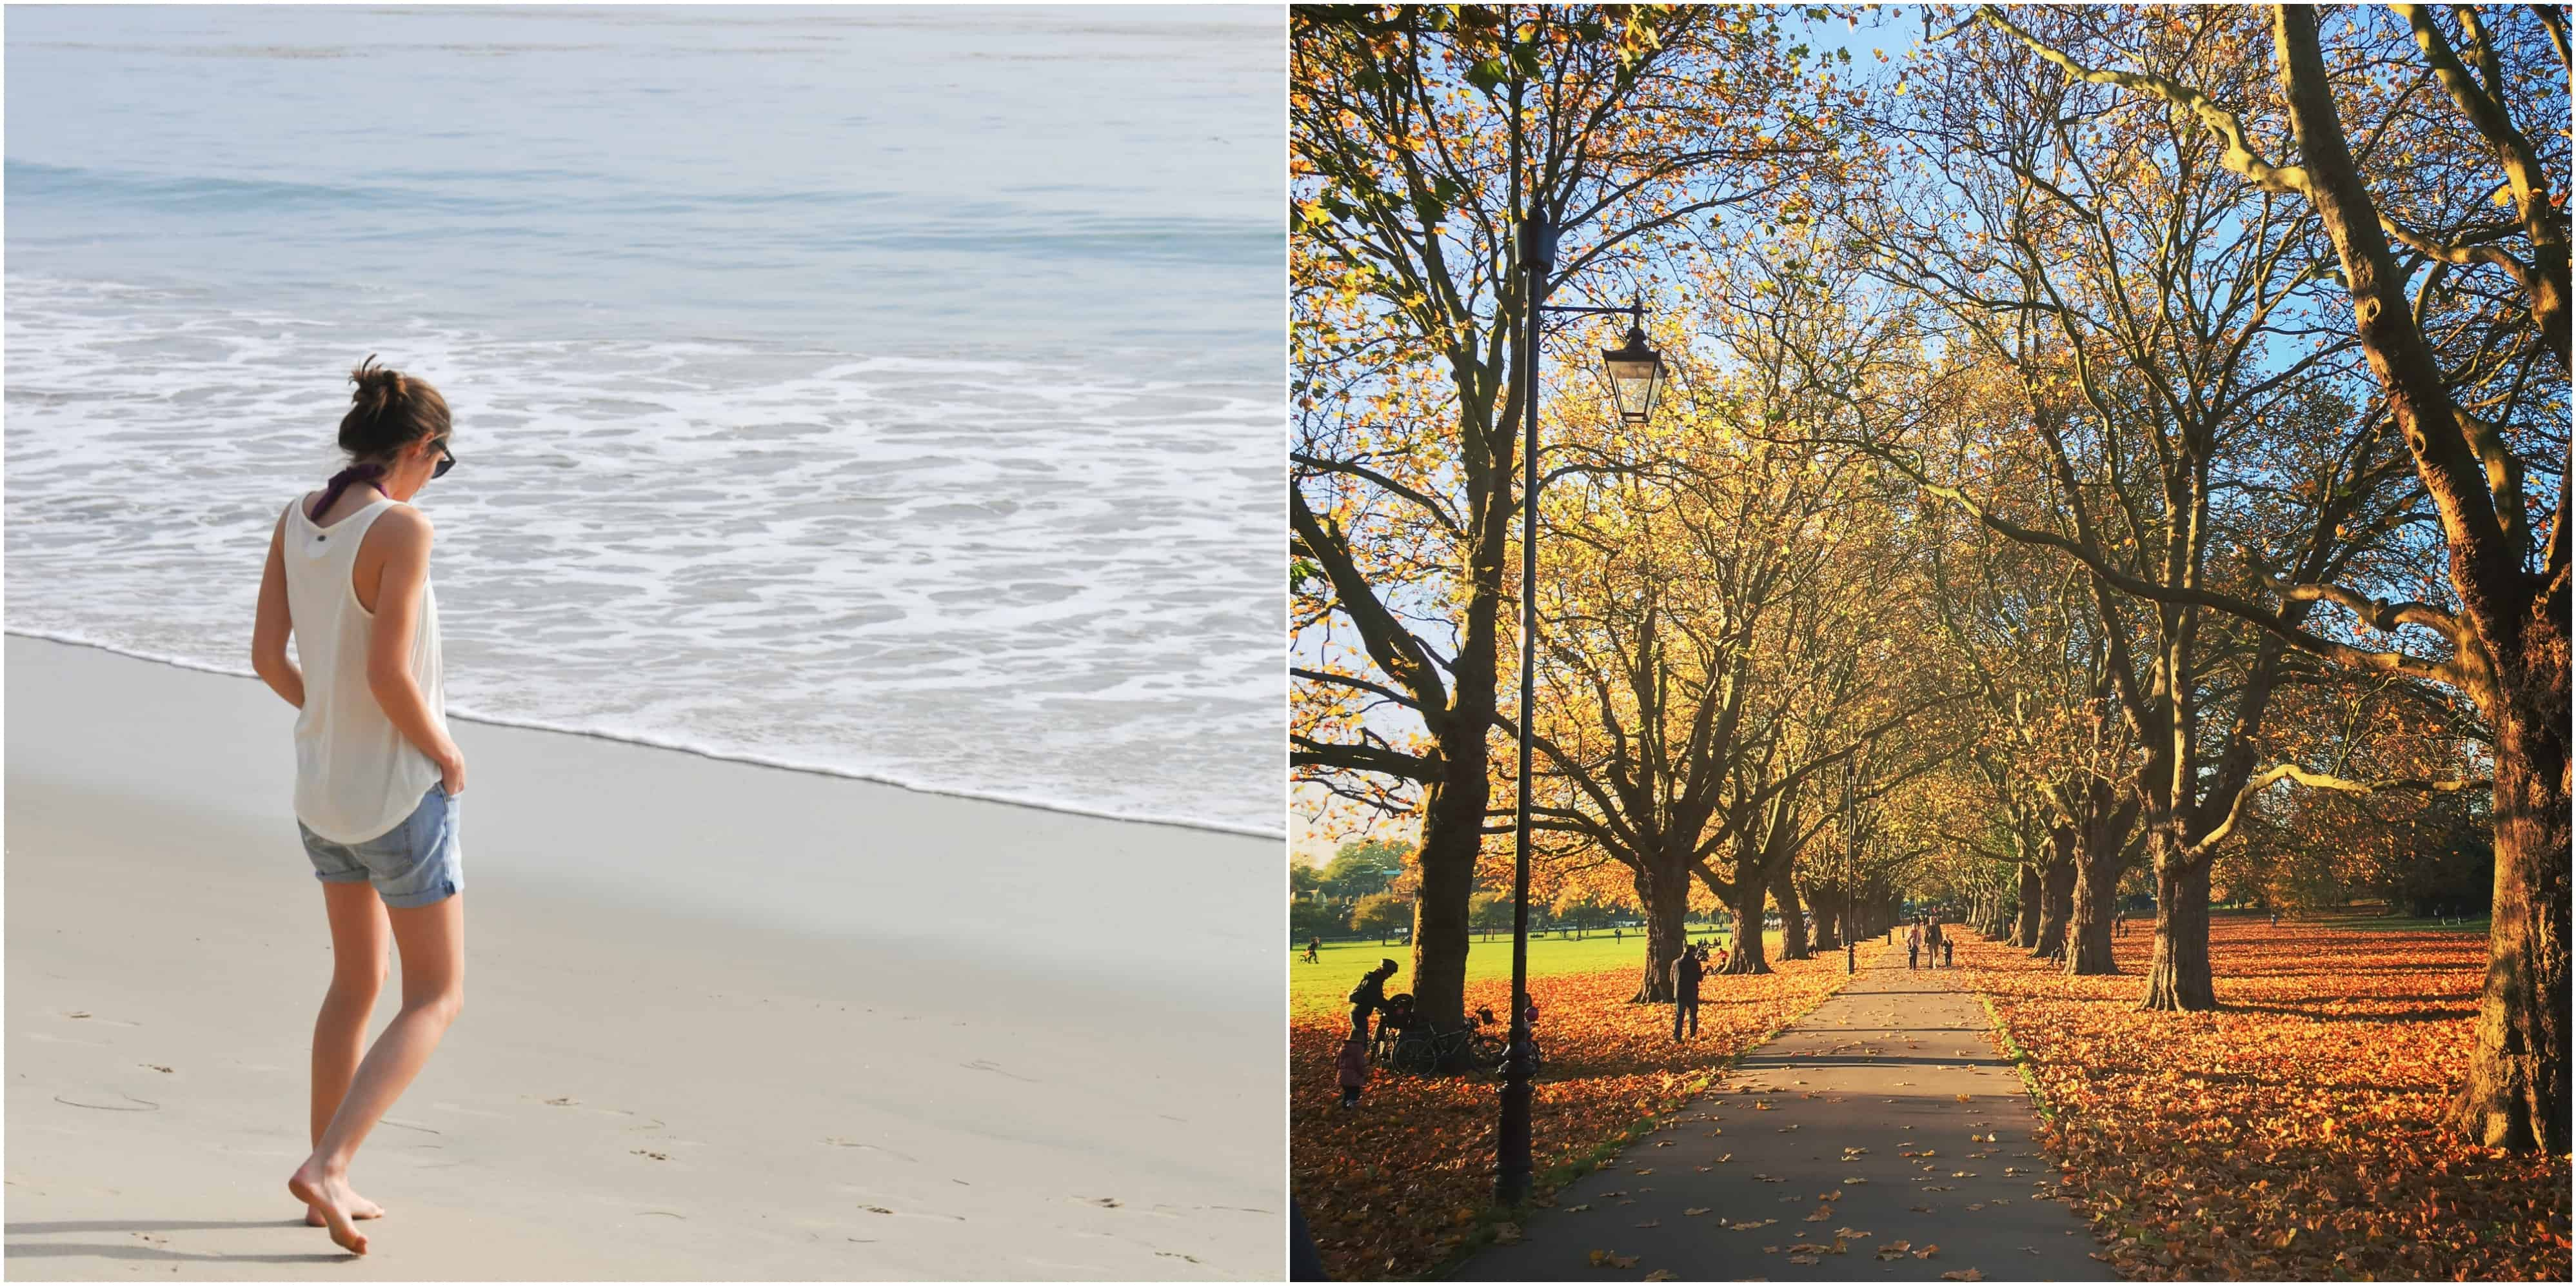 Los Angeles beach and Jesus Green